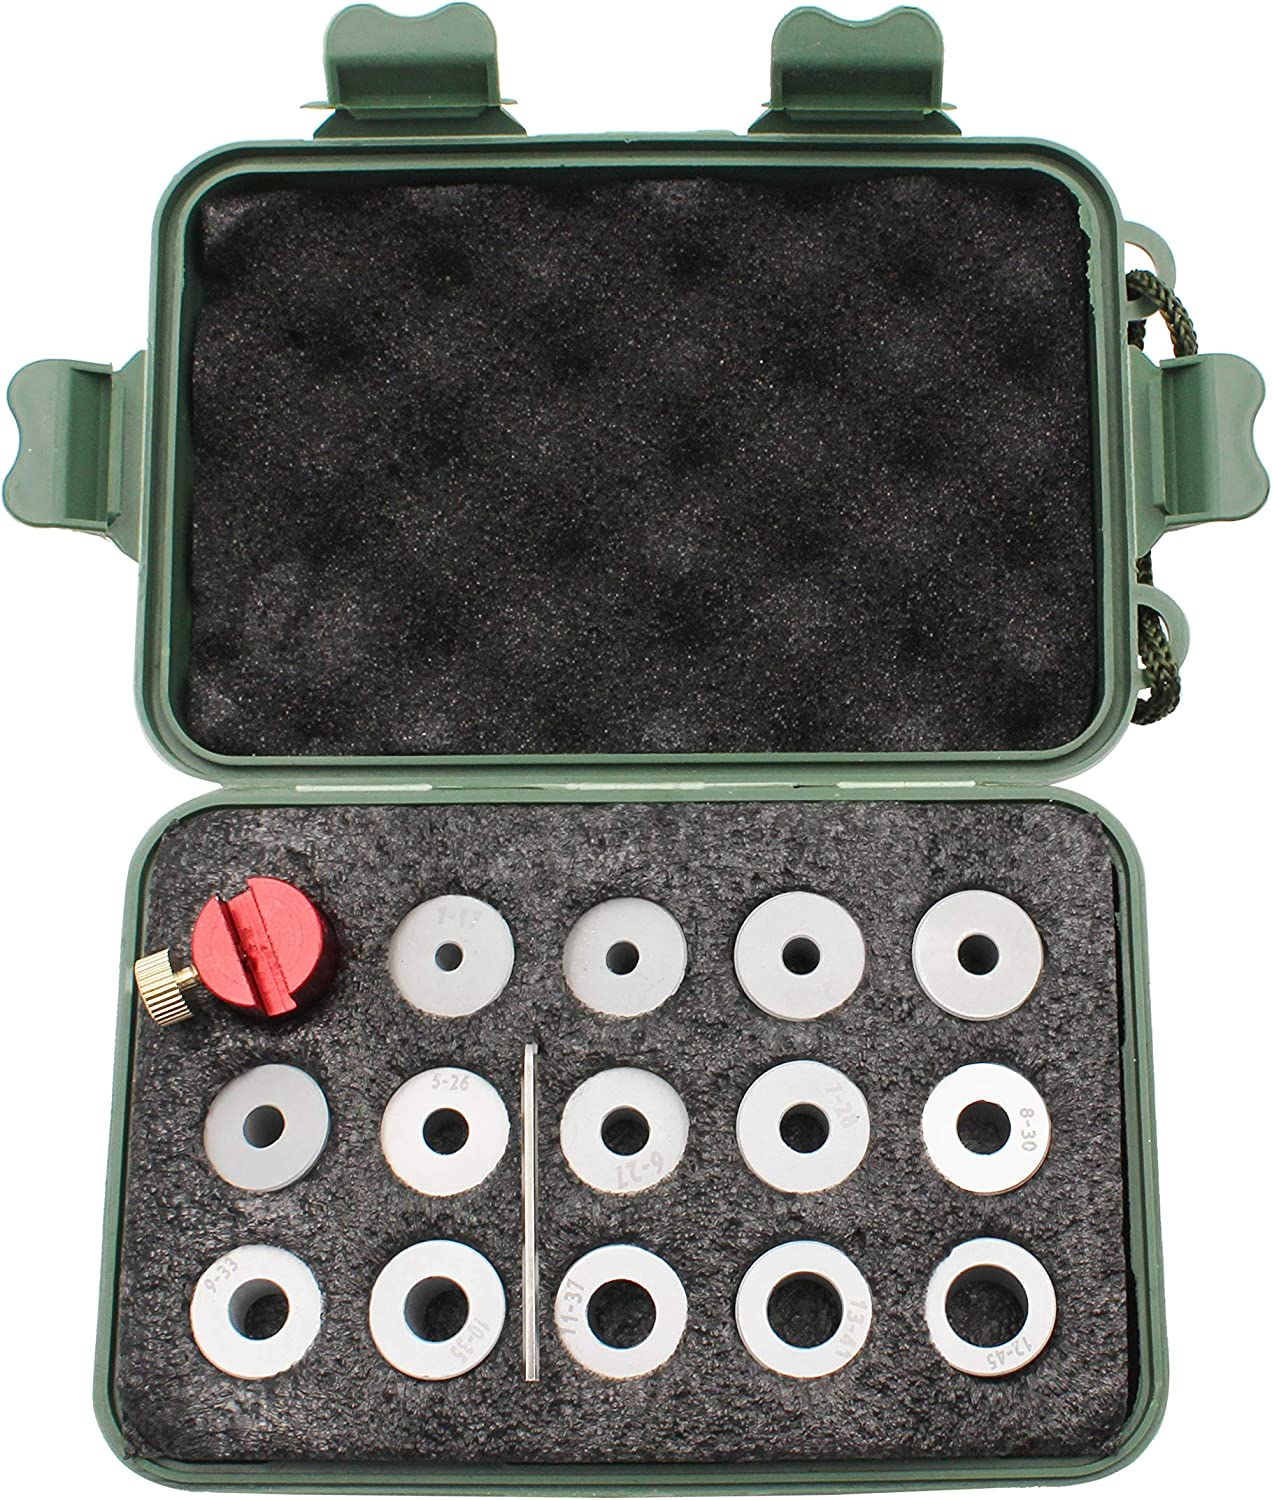 Lock-N-Load Comparator Body, Compatible with Any Set of Calipers, Measuring Cartridges from .17 to .45 Caliber.